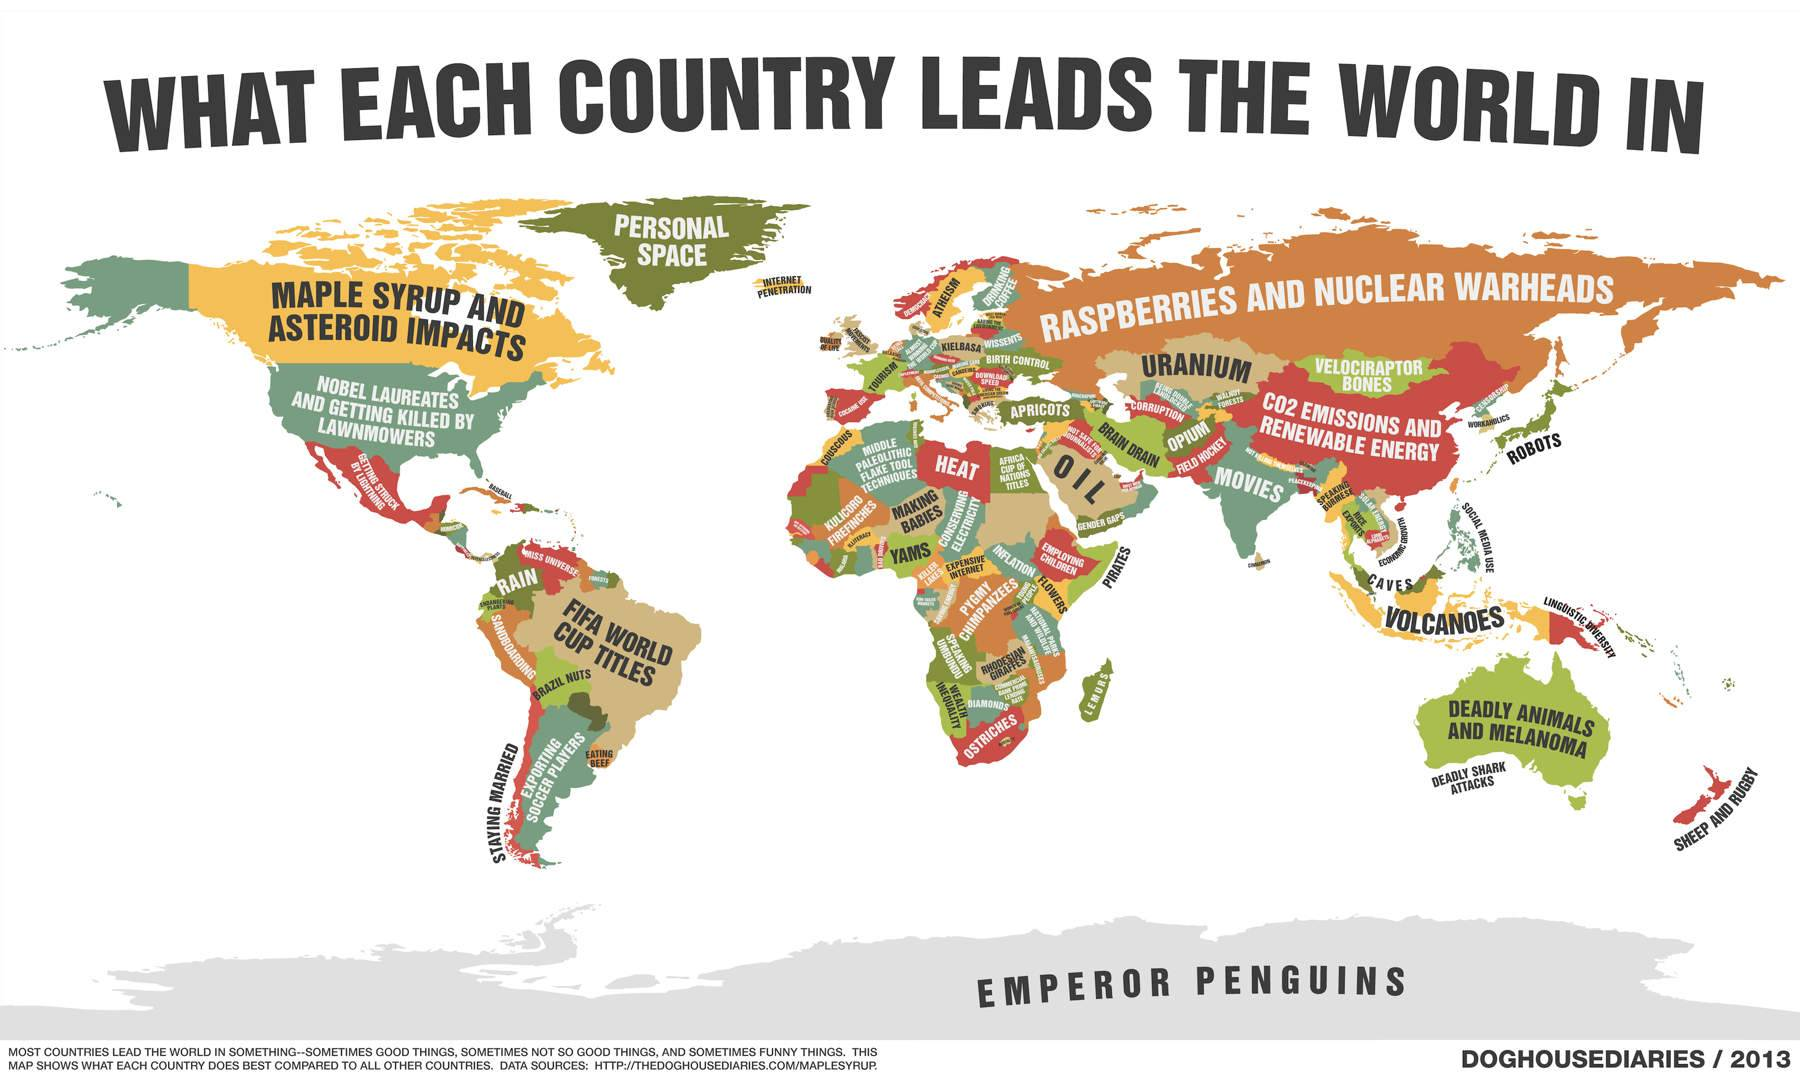 Each country leads the world in